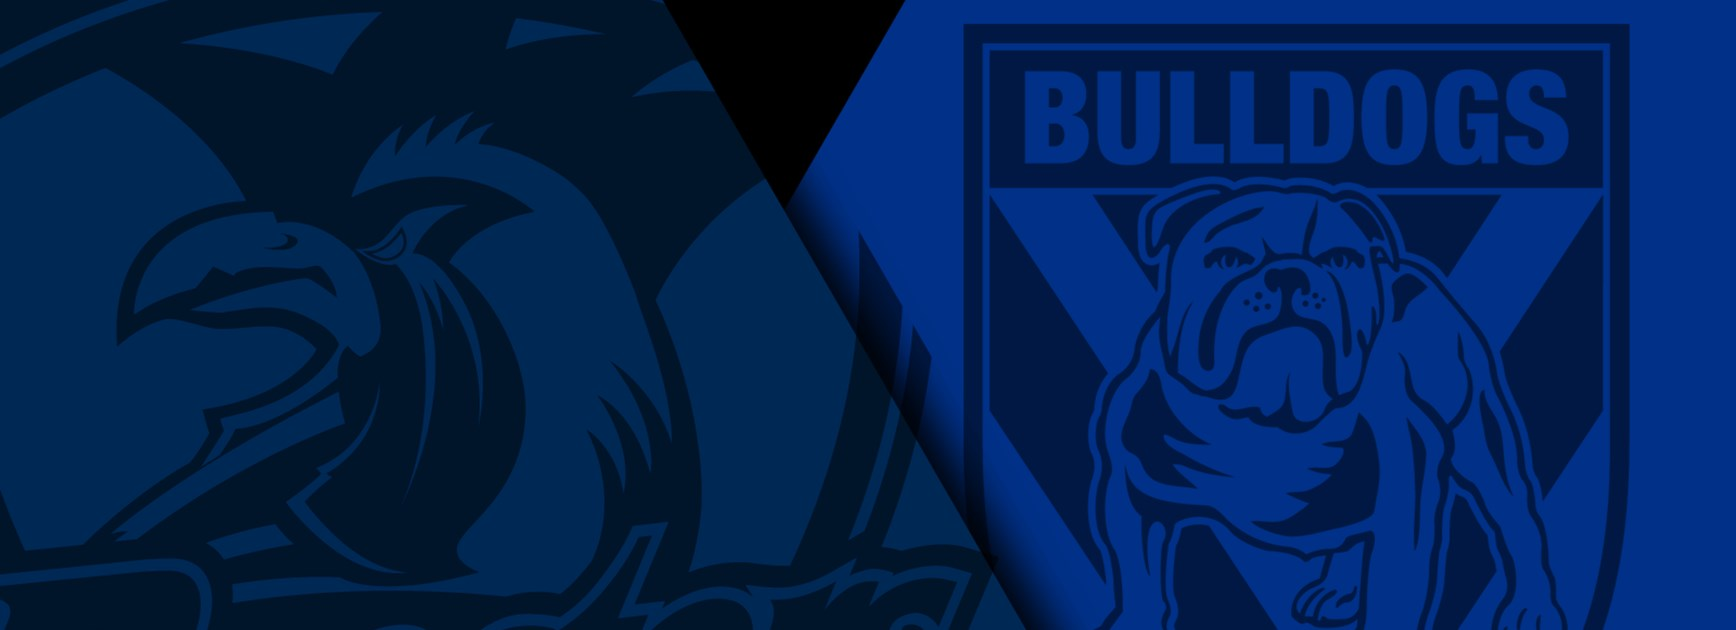 Roosters-Bulldogs preview.